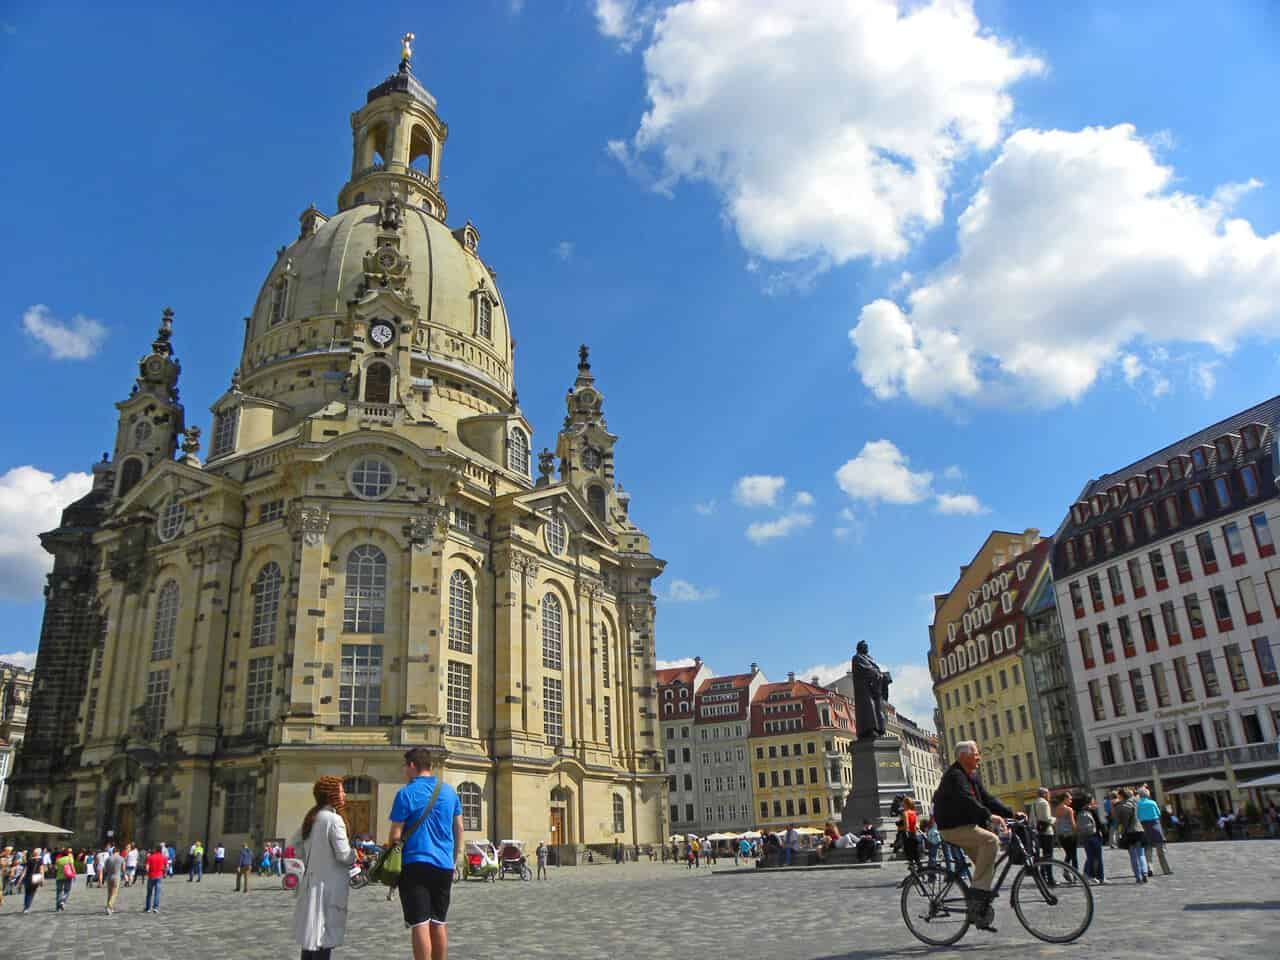 Dresden. Looking back at 2014 (a.k.a our year in photos)